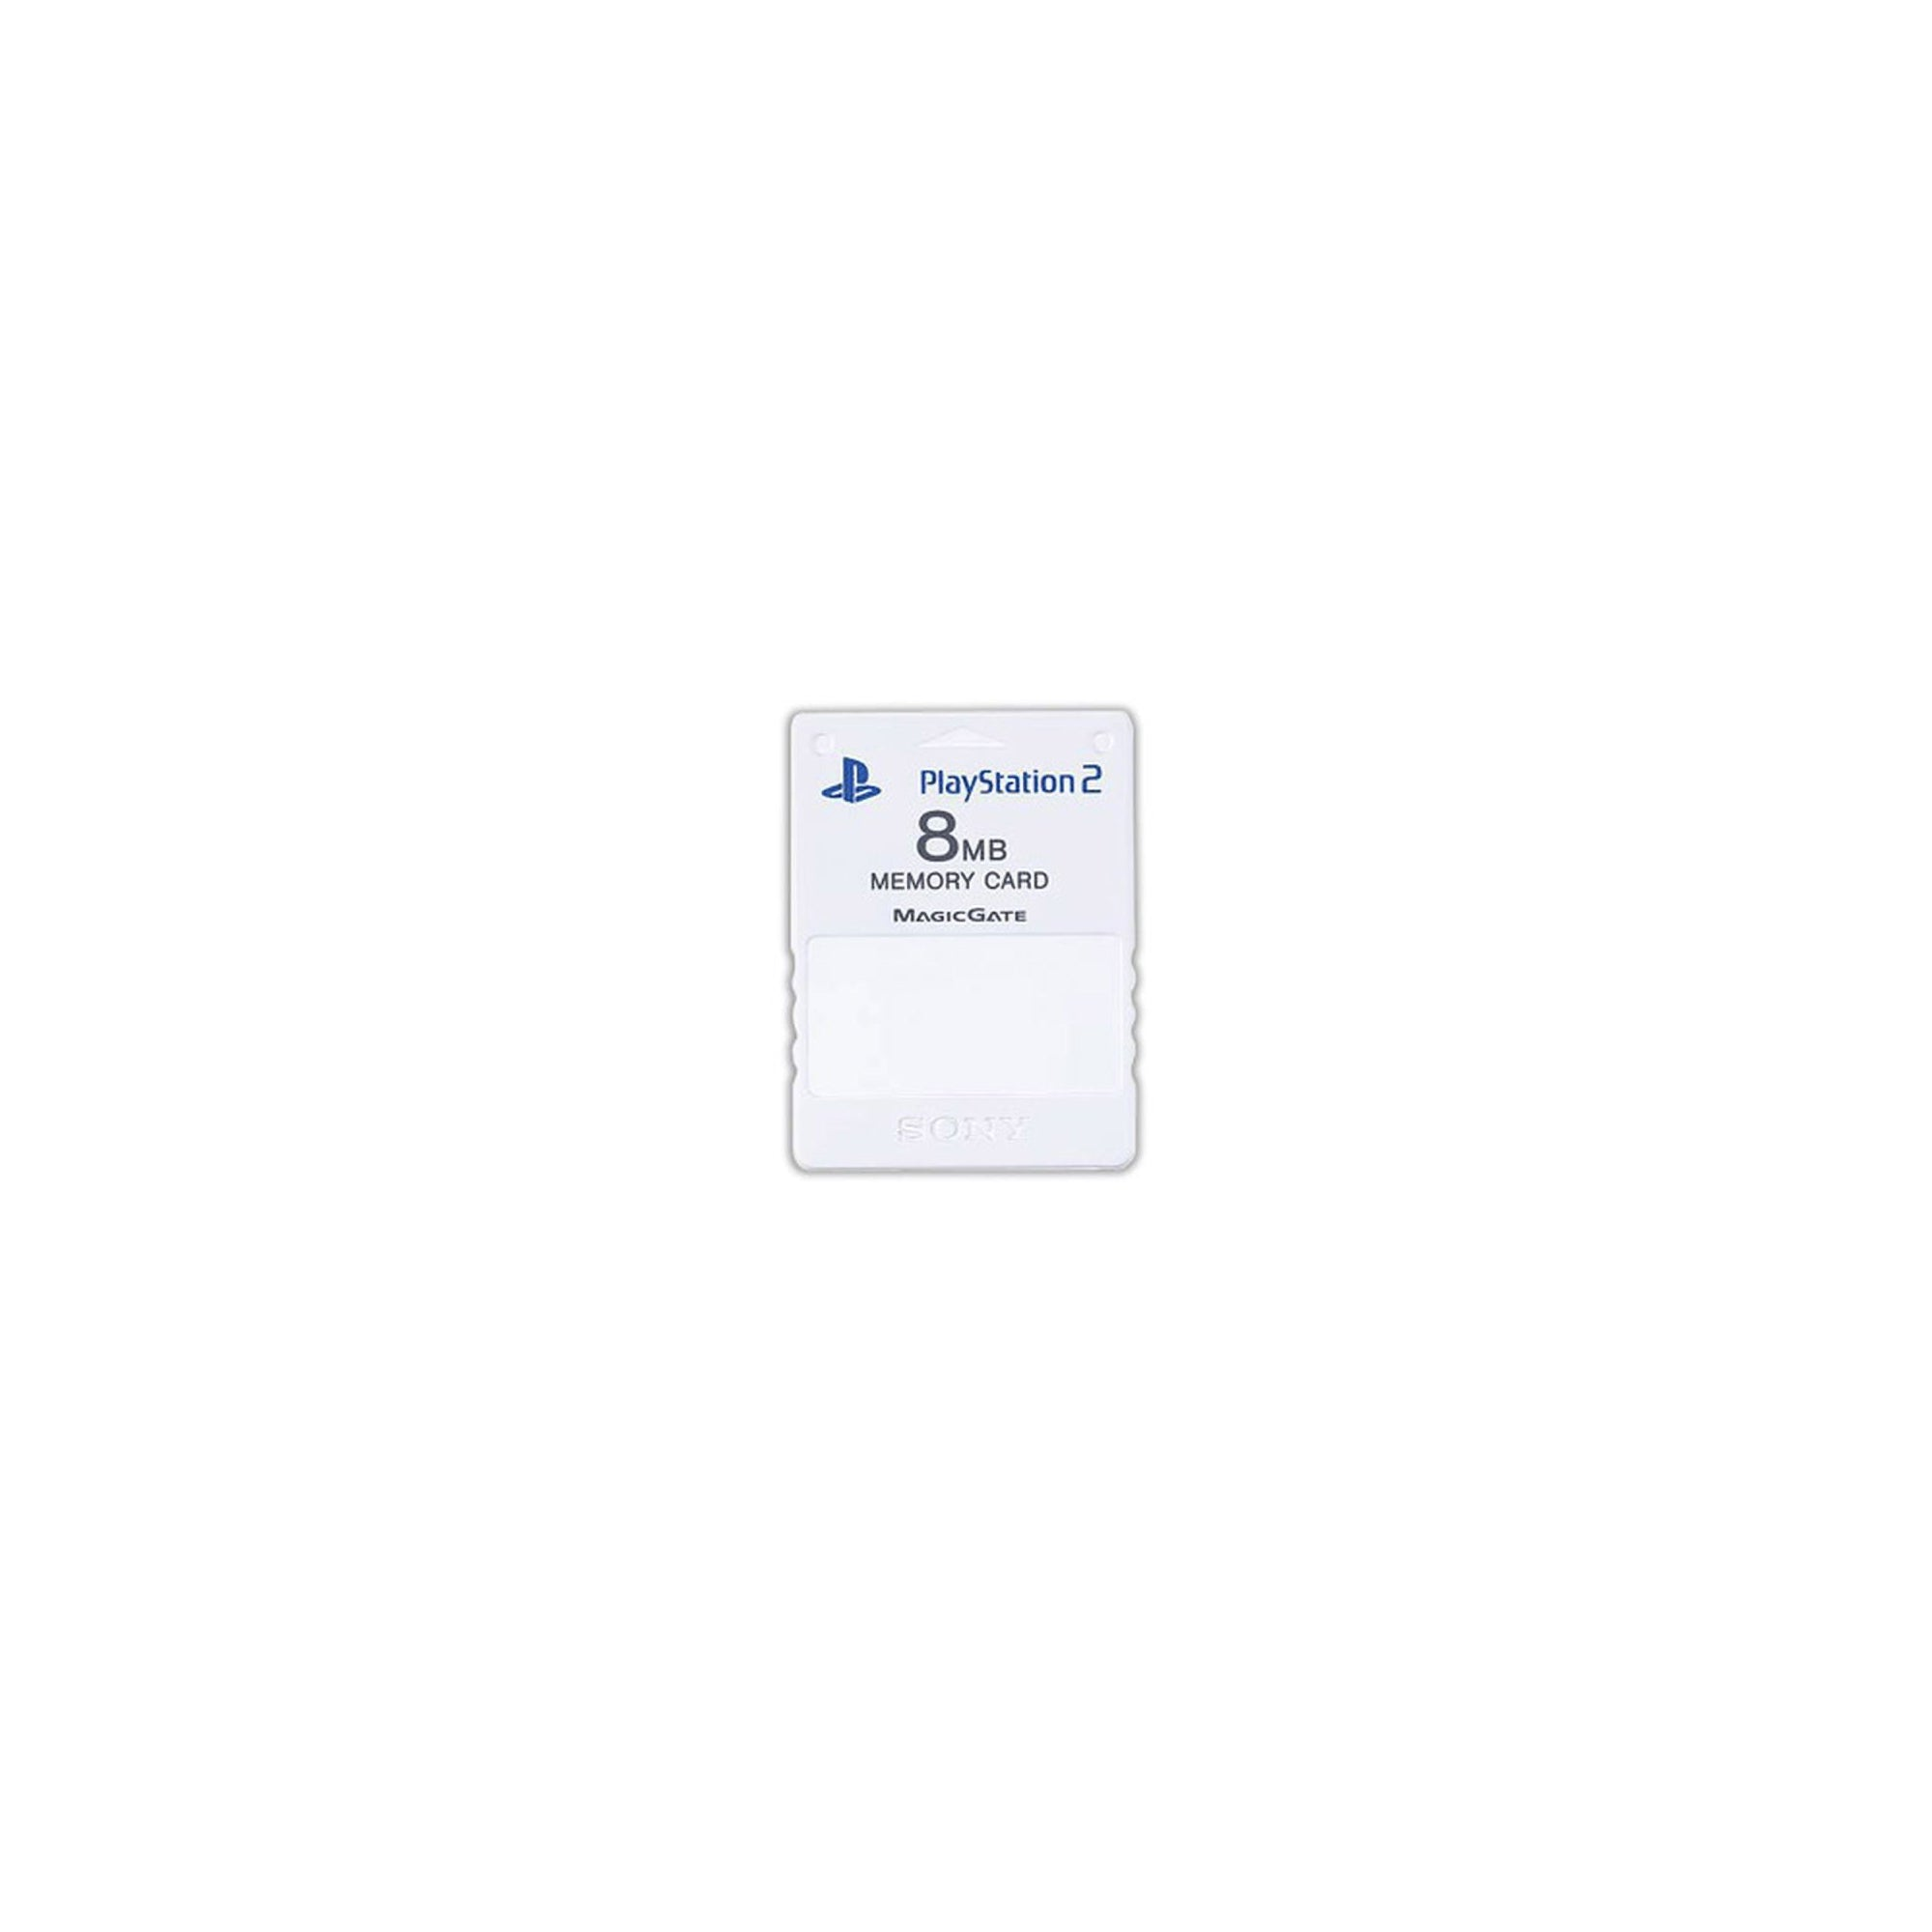 miniature 12 - Sony Playstation 2 Official Memory Card 8MB OEM PS2 Multiple Colors